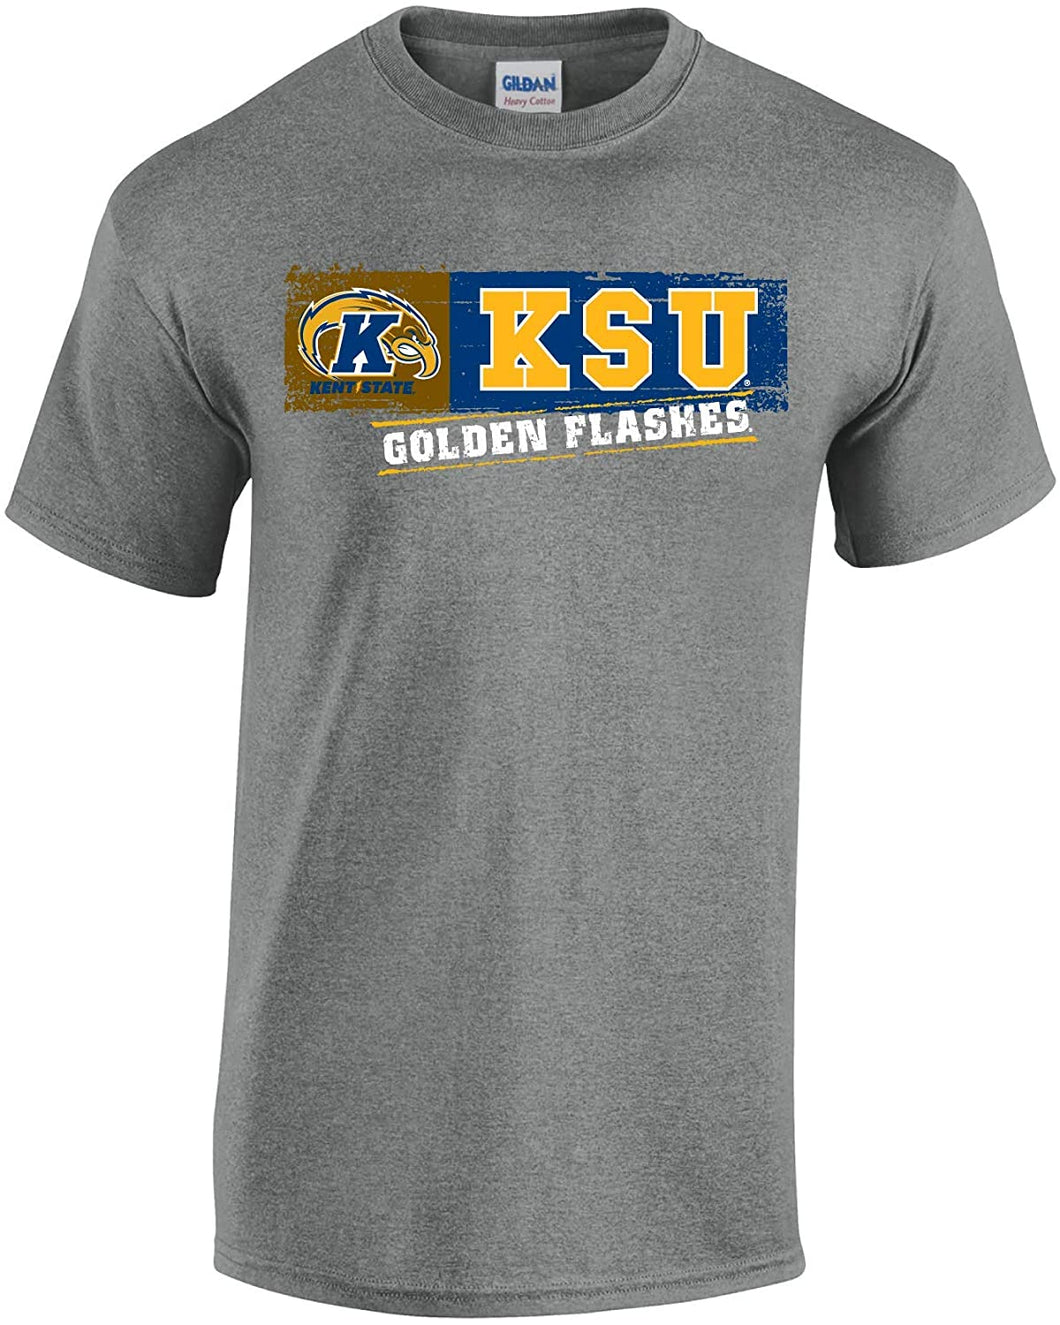 Kent State University Golden Flashes NCAA Sticker Unisex T-Shirt